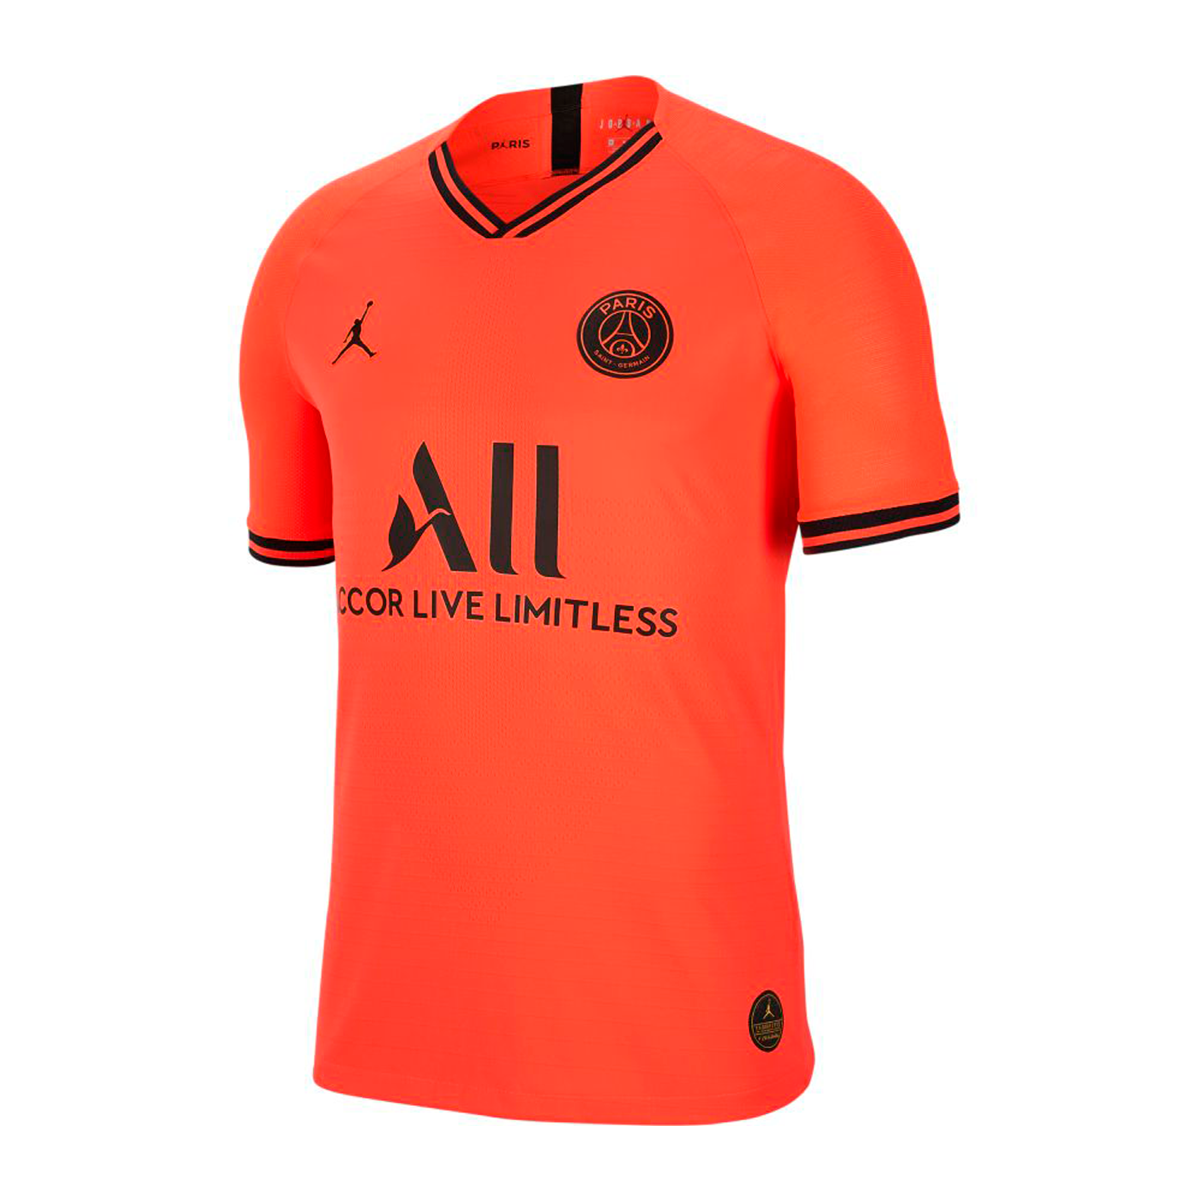 Jersey Nike Paris Saint Germain Vapor Match 2019 2020 Away Infrared Black Football Store Futbol Emotion